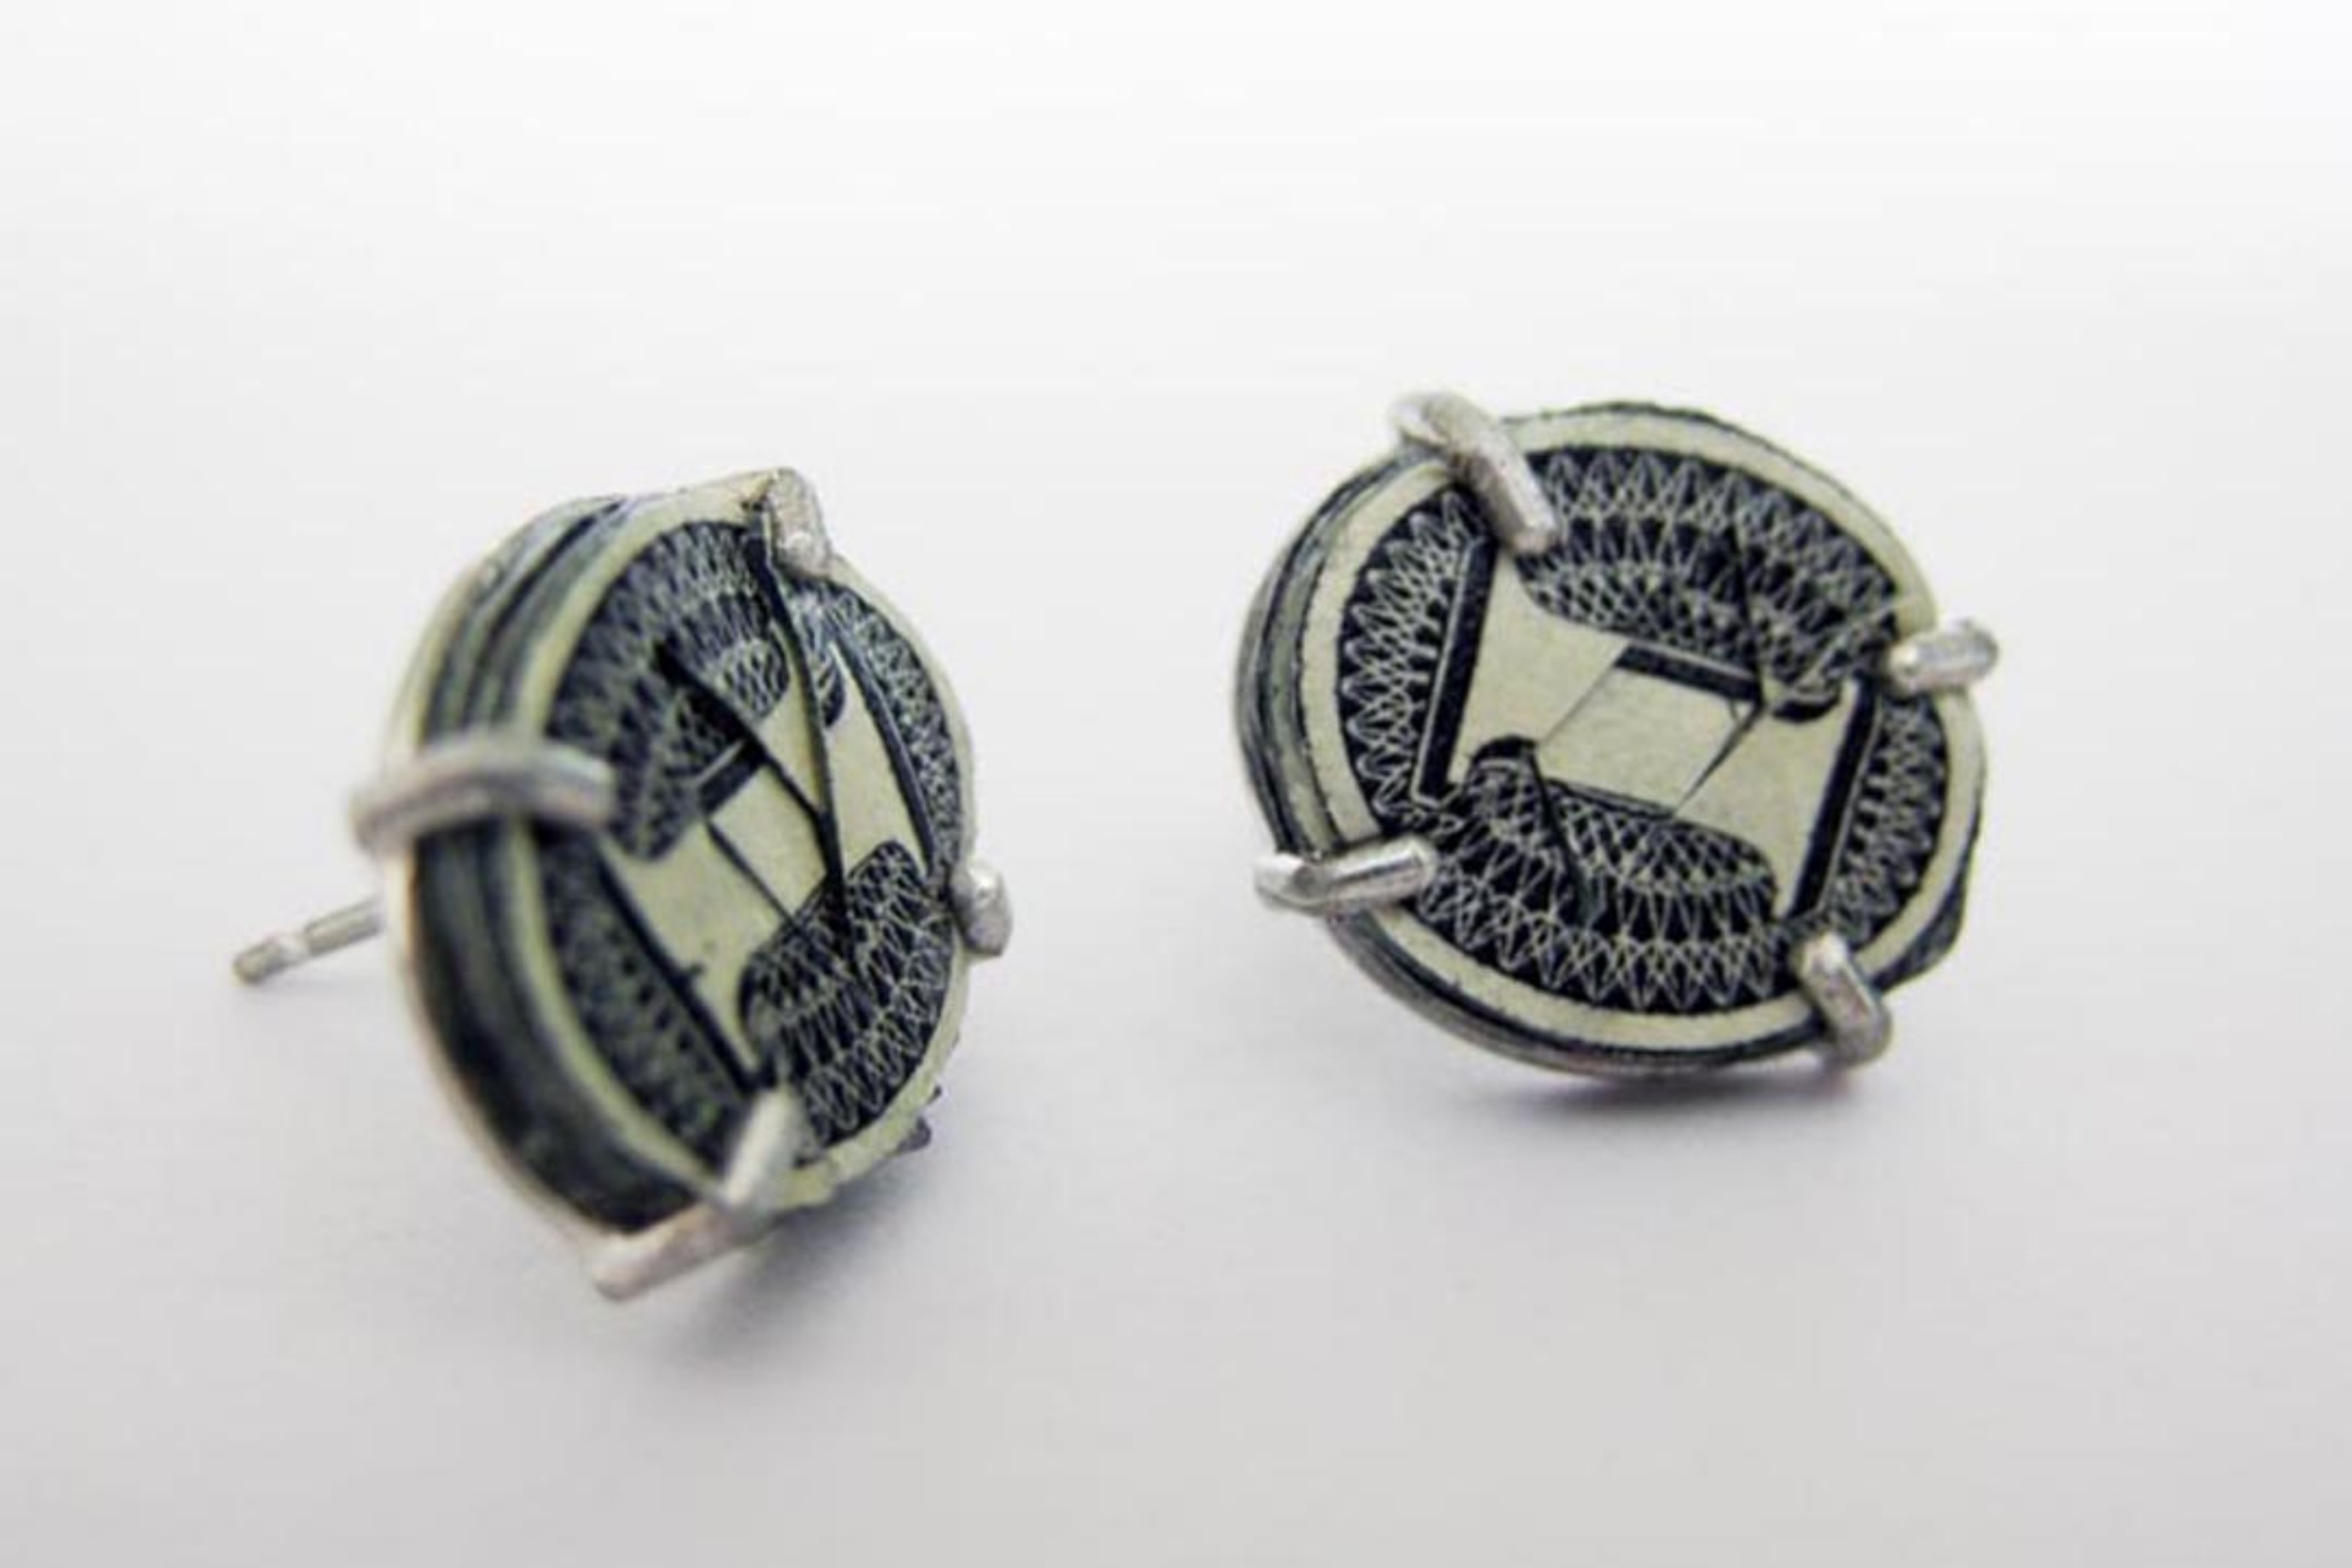 $4.00 Studs | Earrings| US Currency, Latex, and Silver | 2012